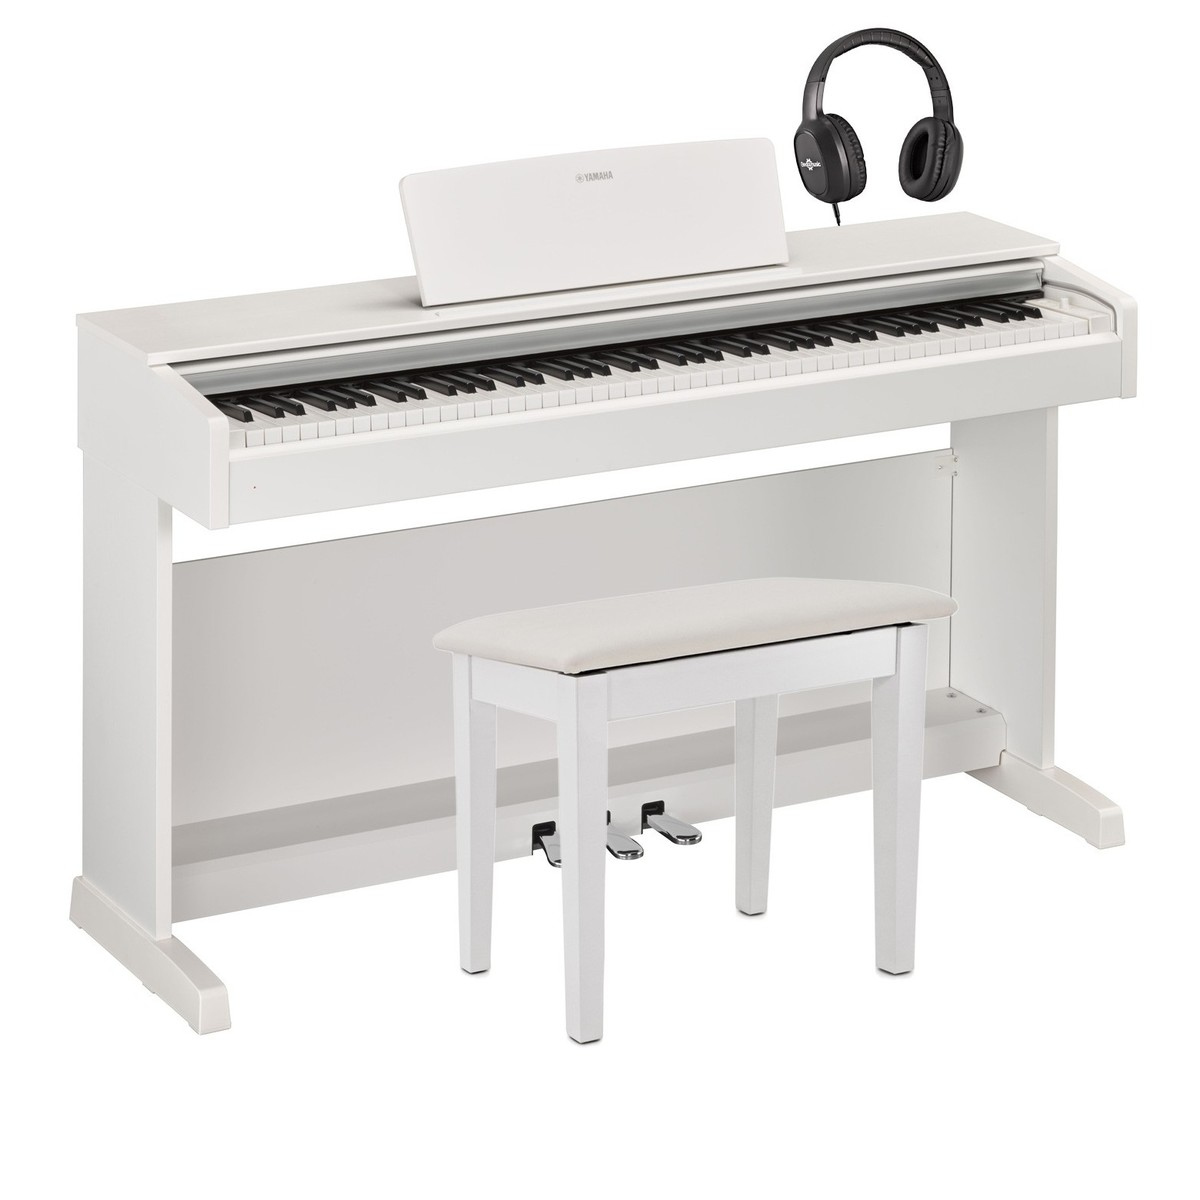 yamaha ydp 143 digital piano package white at gear4music. Black Bedroom Furniture Sets. Home Design Ideas